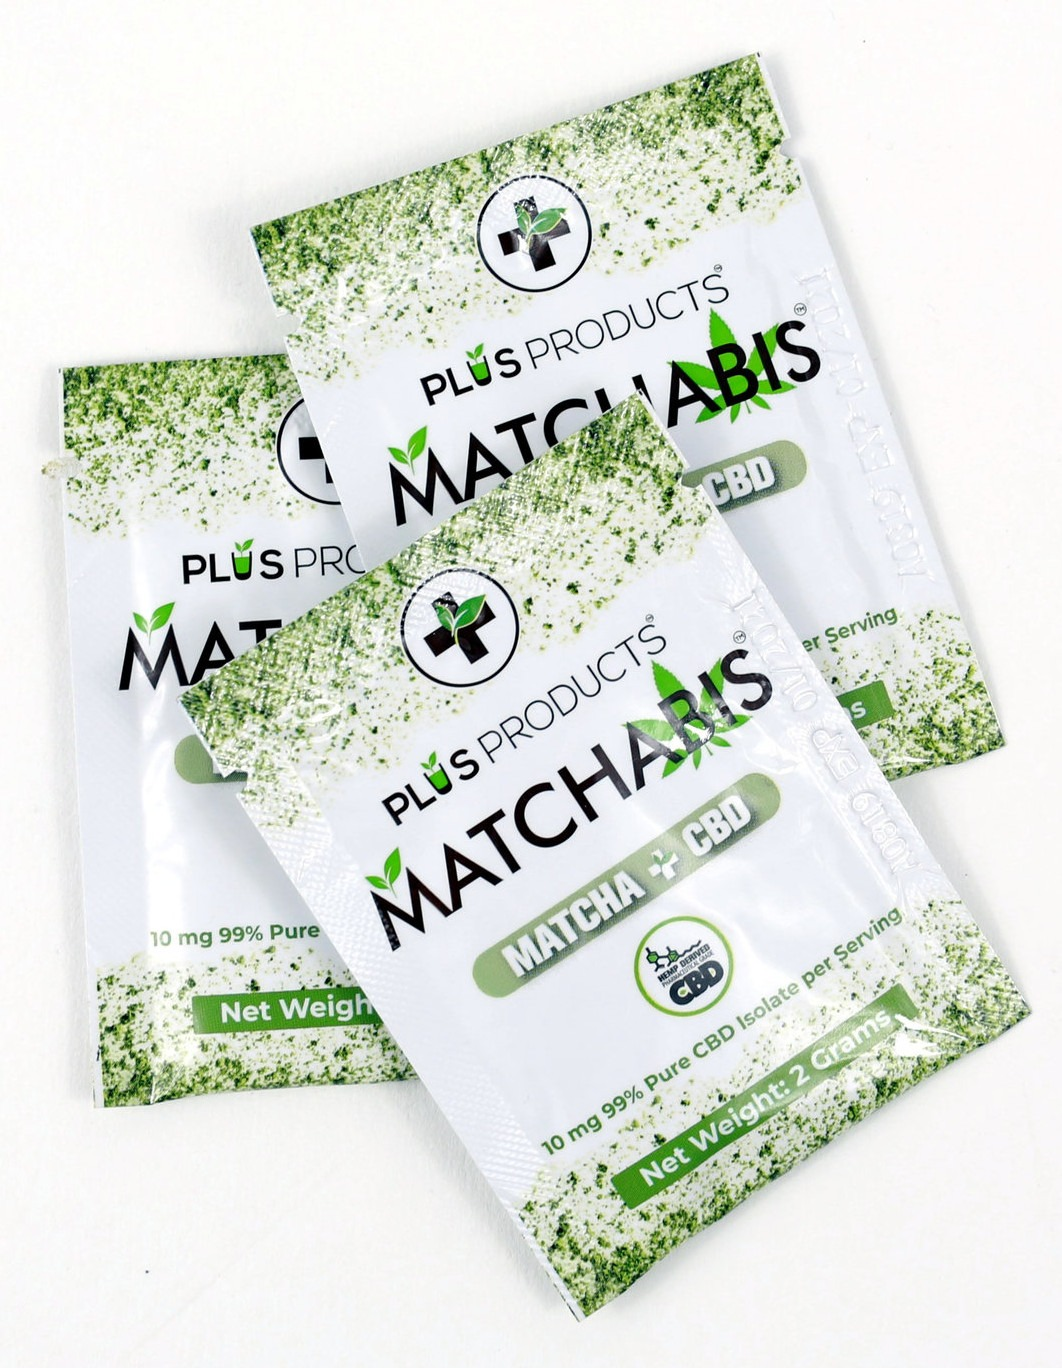 CBD NJ - Matchabis Matcha Tea with CBD Packs